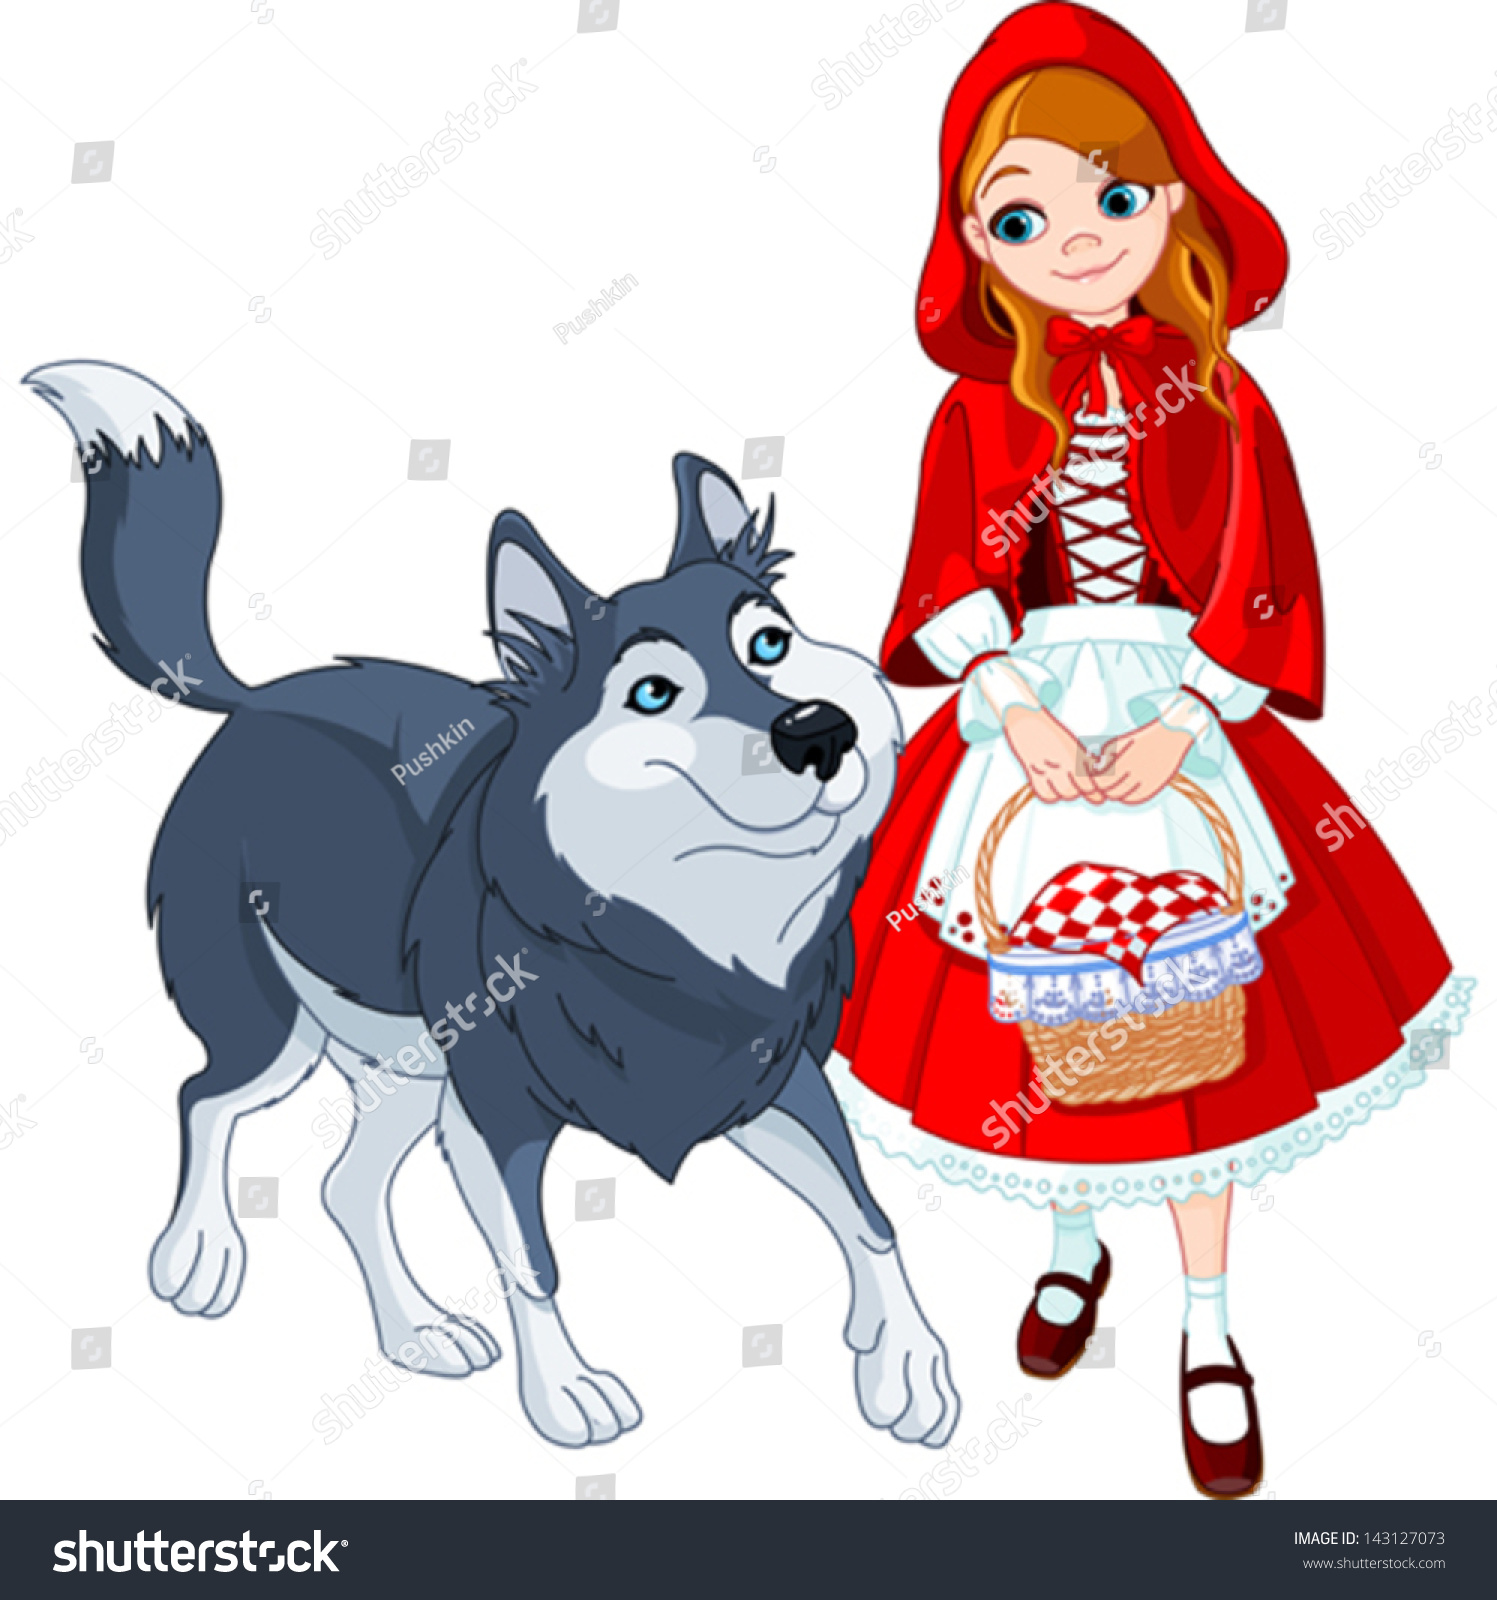 image Little red riding hood and snow white